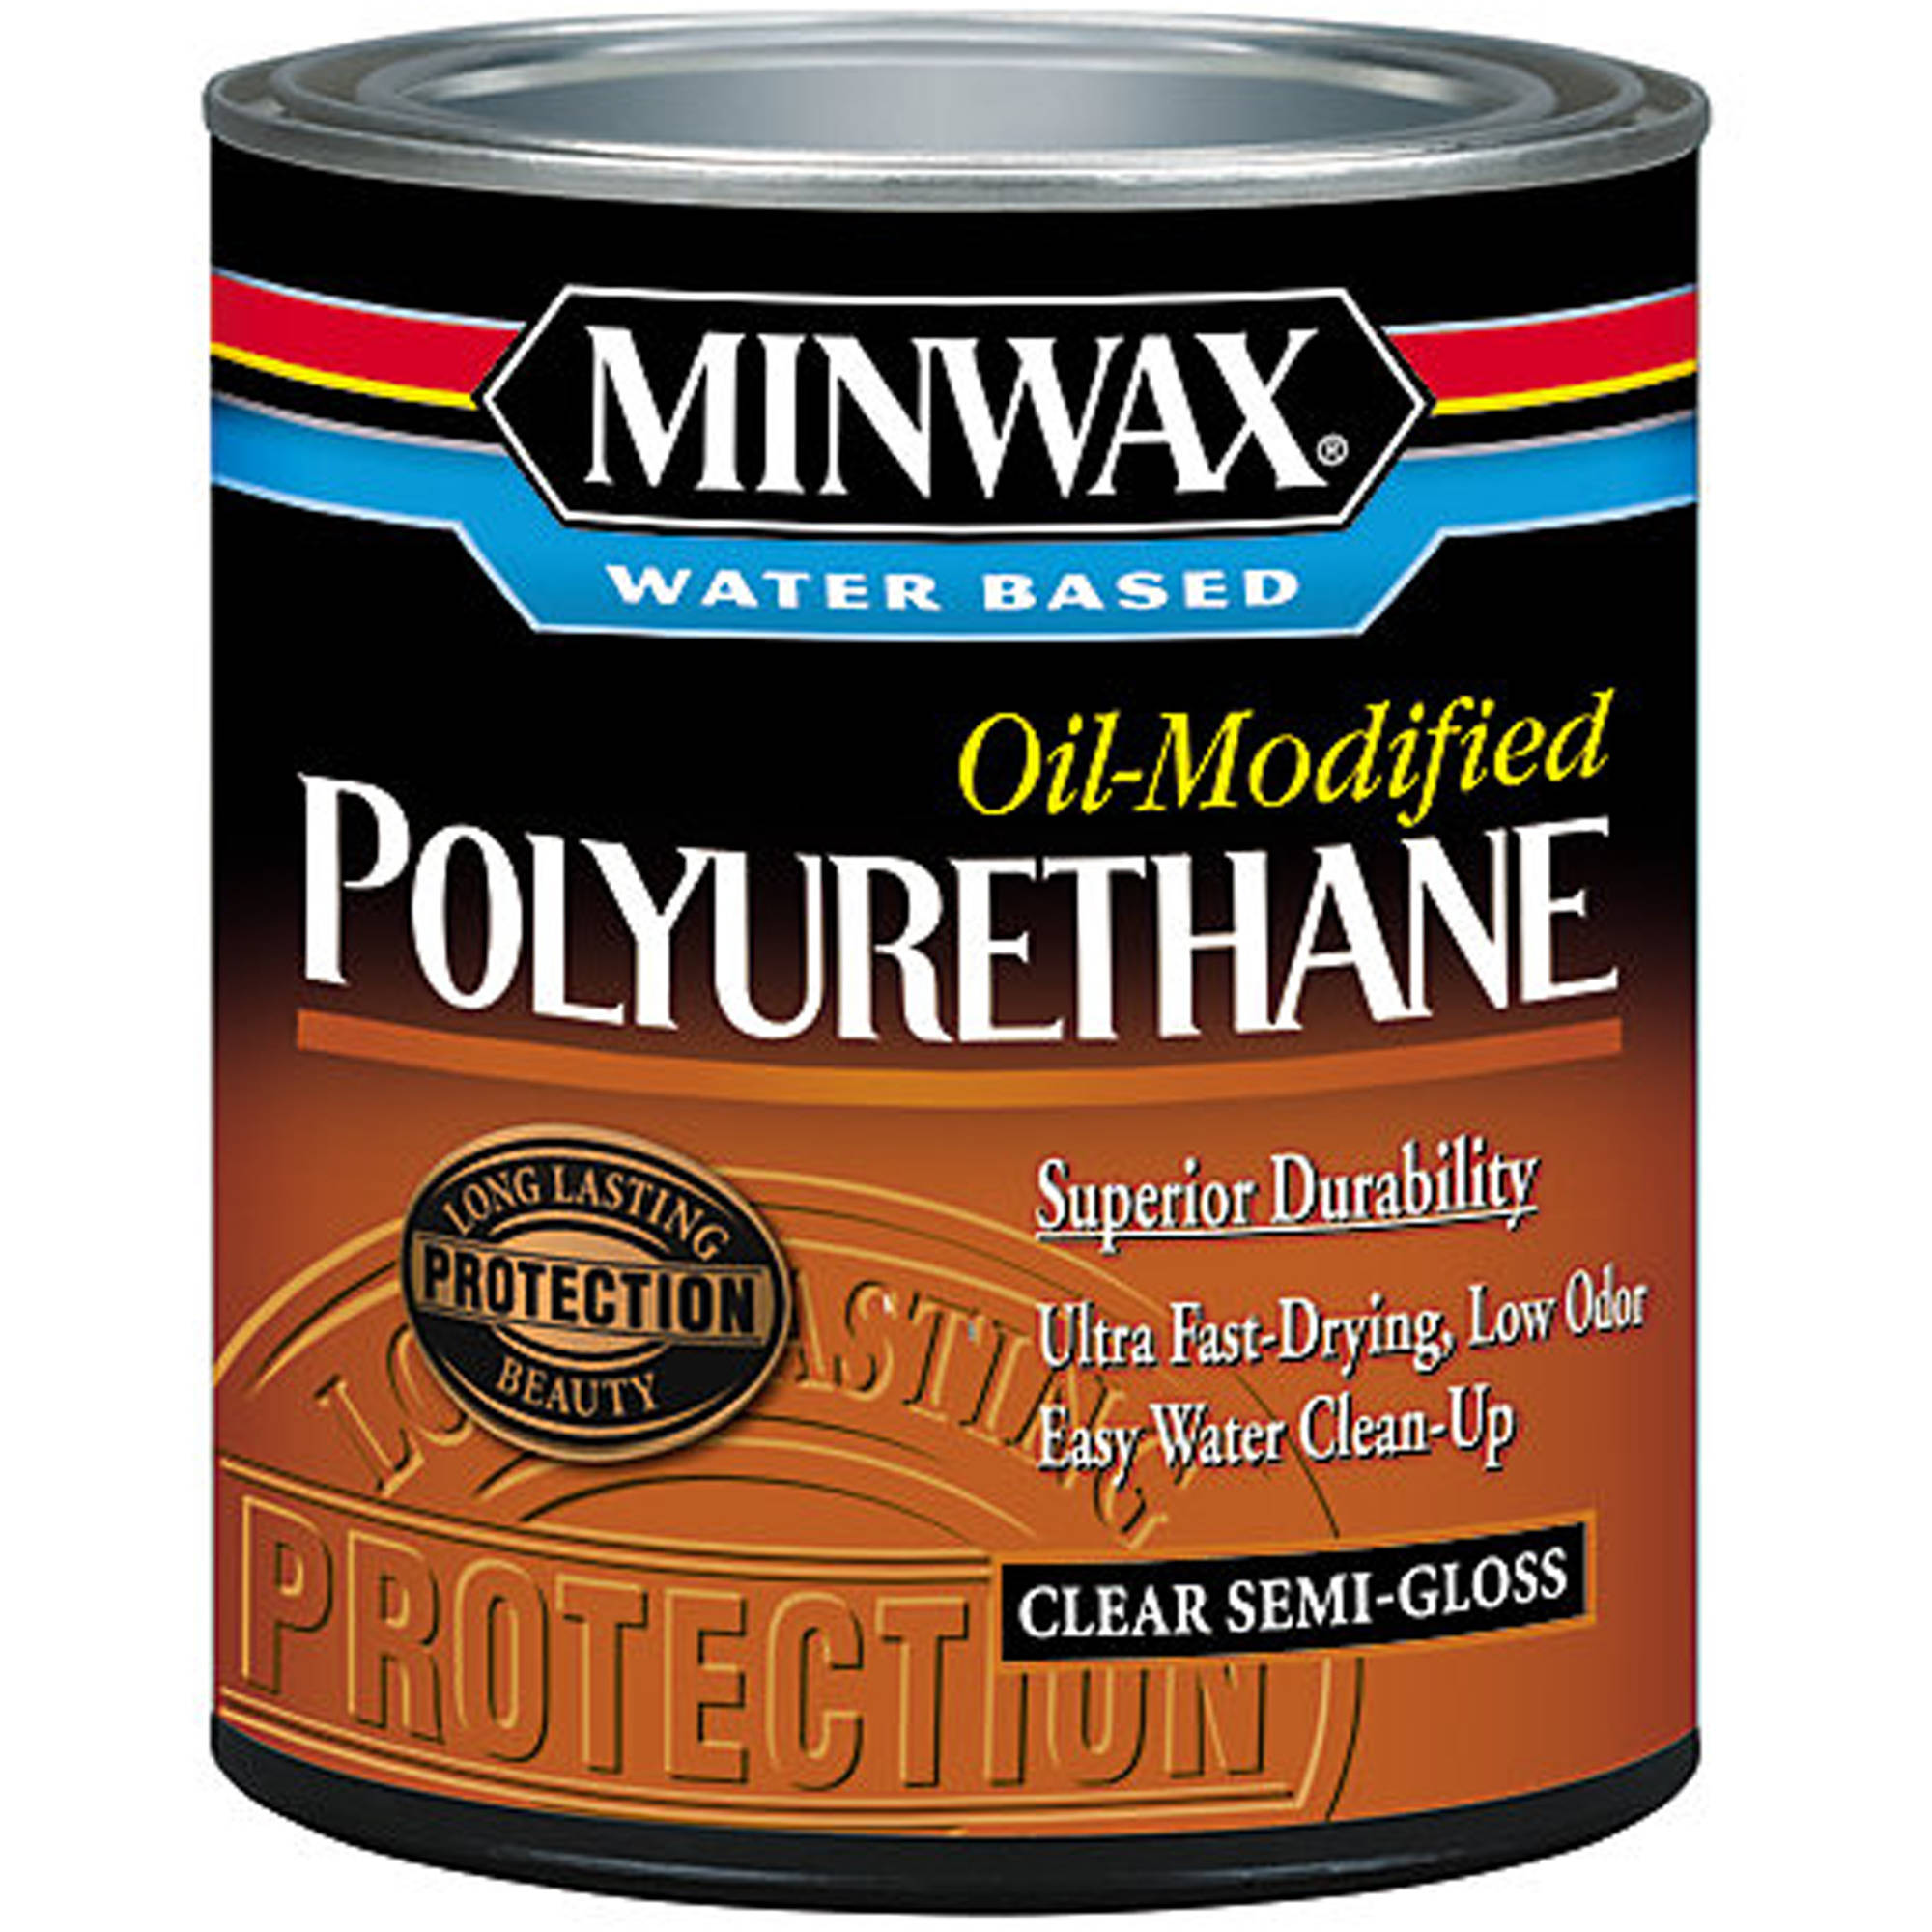 Minwax Water Based Oil-Modified Polyurethane, 1/2 pt, Semi-Gloss